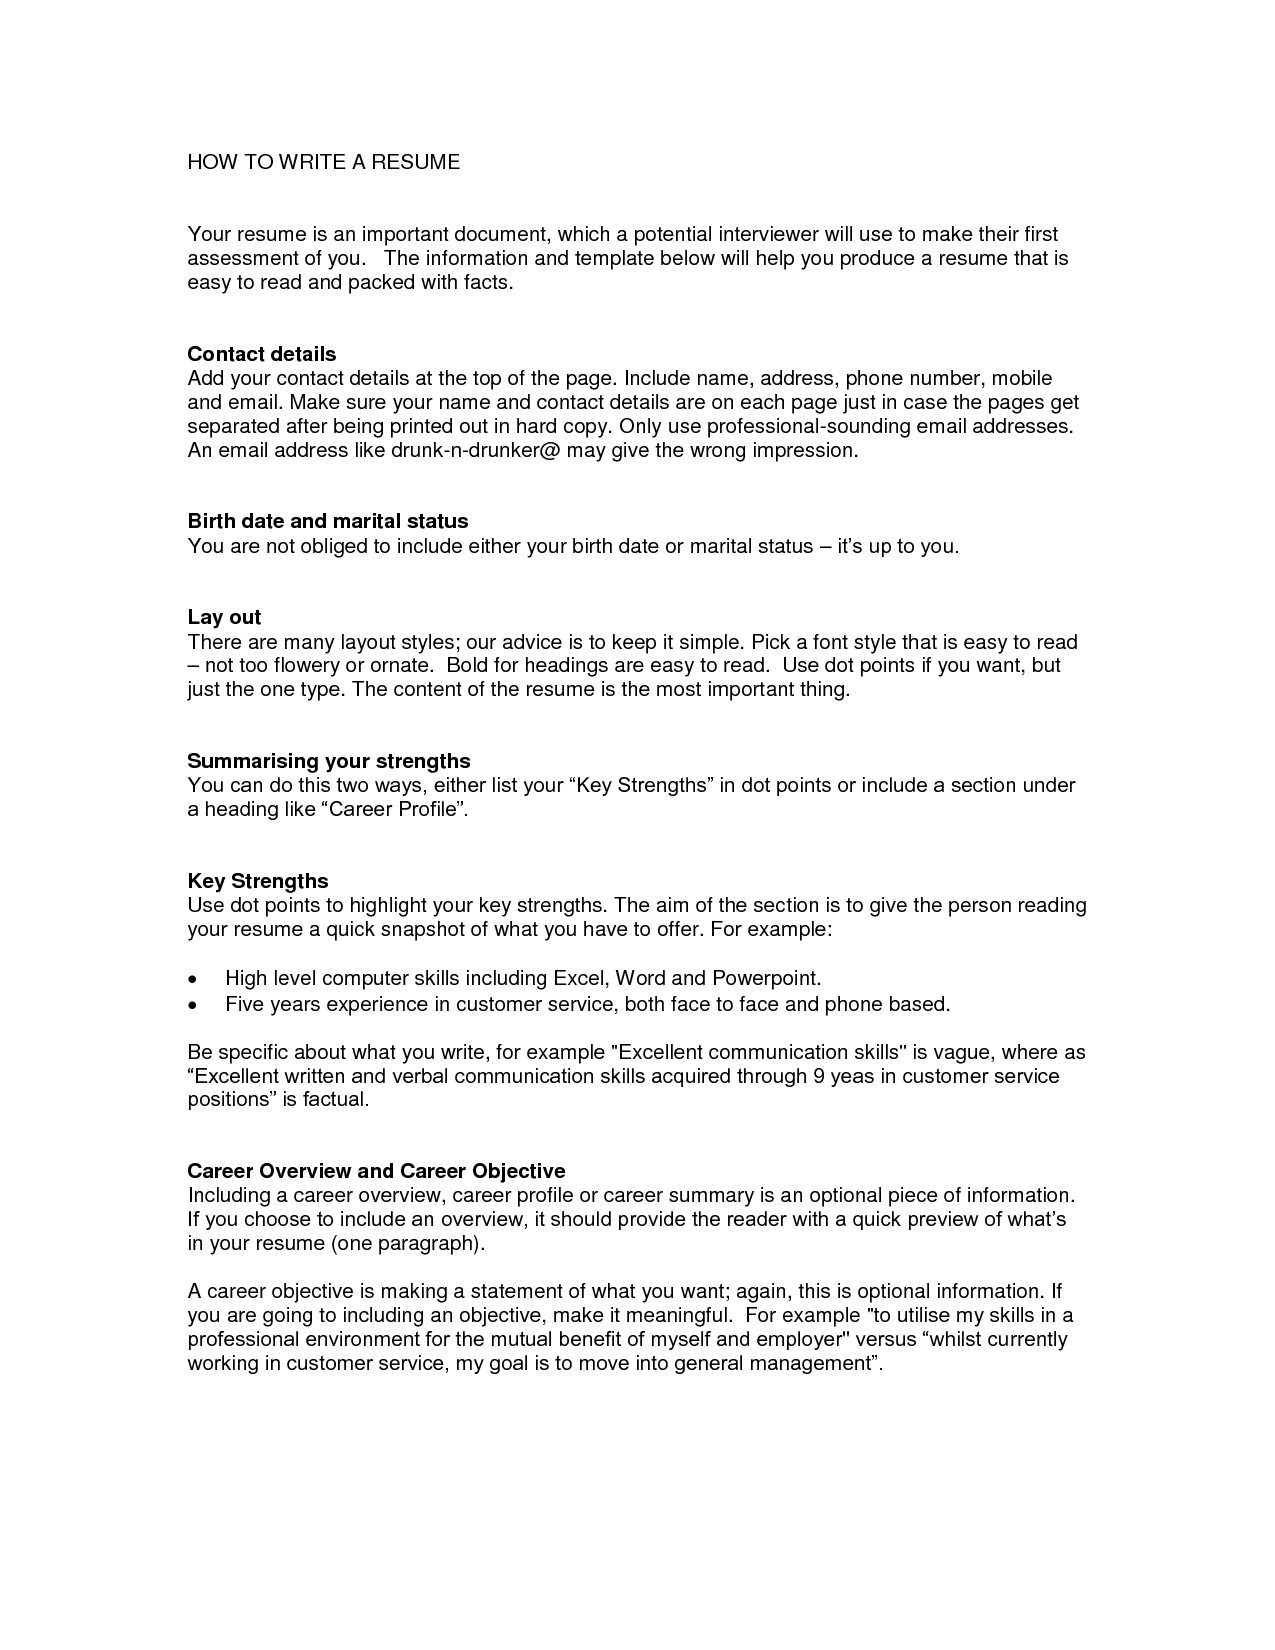 how to write a resume net the easiest online resume builderwriting a resume cover letter examples - Examples Of Online Resumes